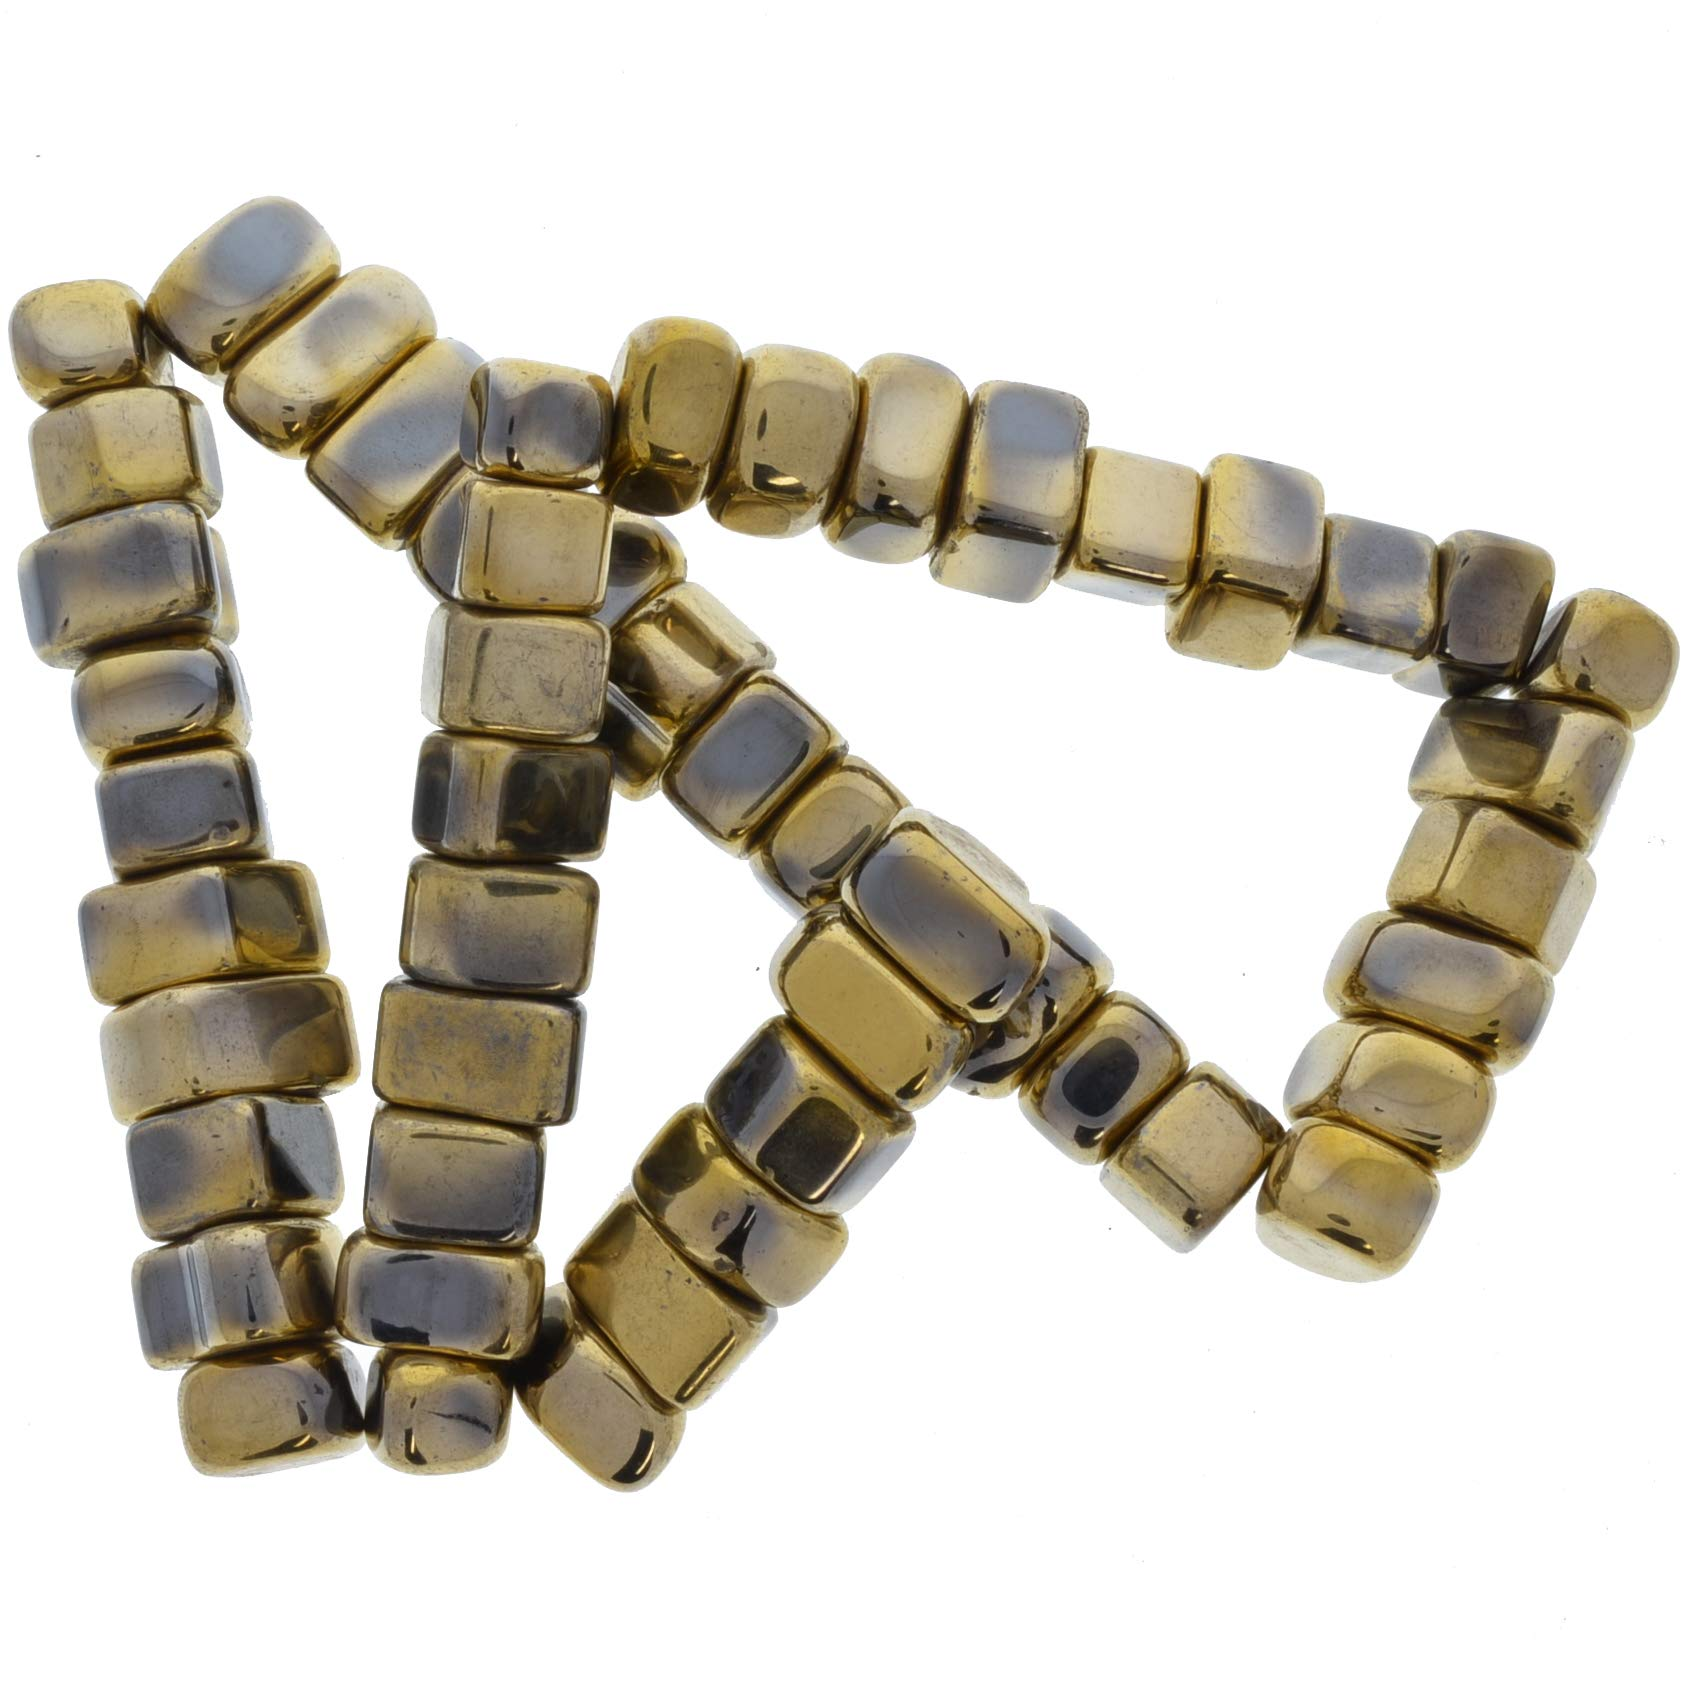 Digging Dolls: 5 lbs Small Golden Magnetic Hematite Sticky Stones - Great for Arts, Crafts, Party Favors, Party Gifts, Refrigerator Magnets and More!